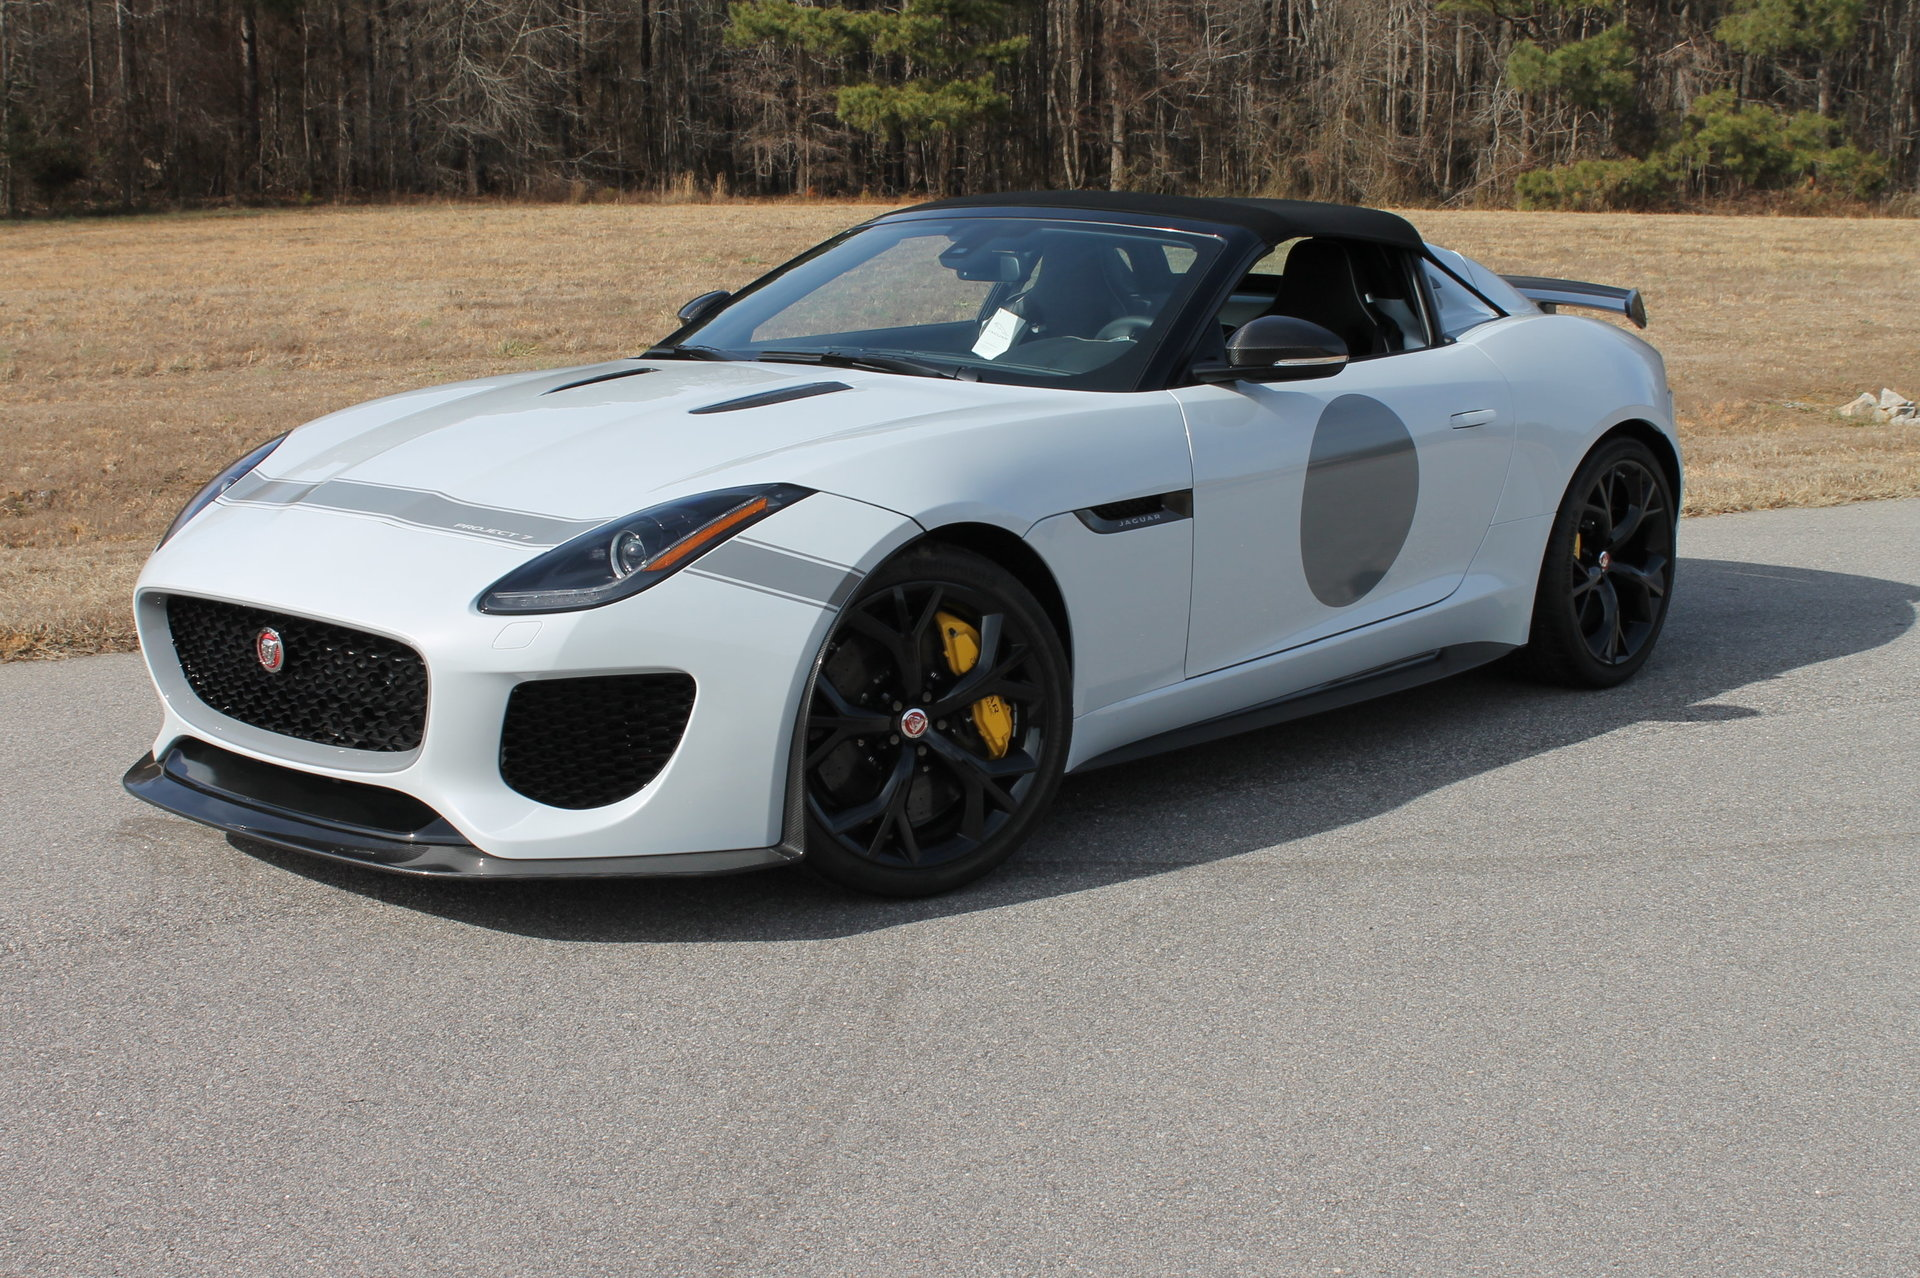 121625fe6c65f hd 2016 jaguar f type project 7